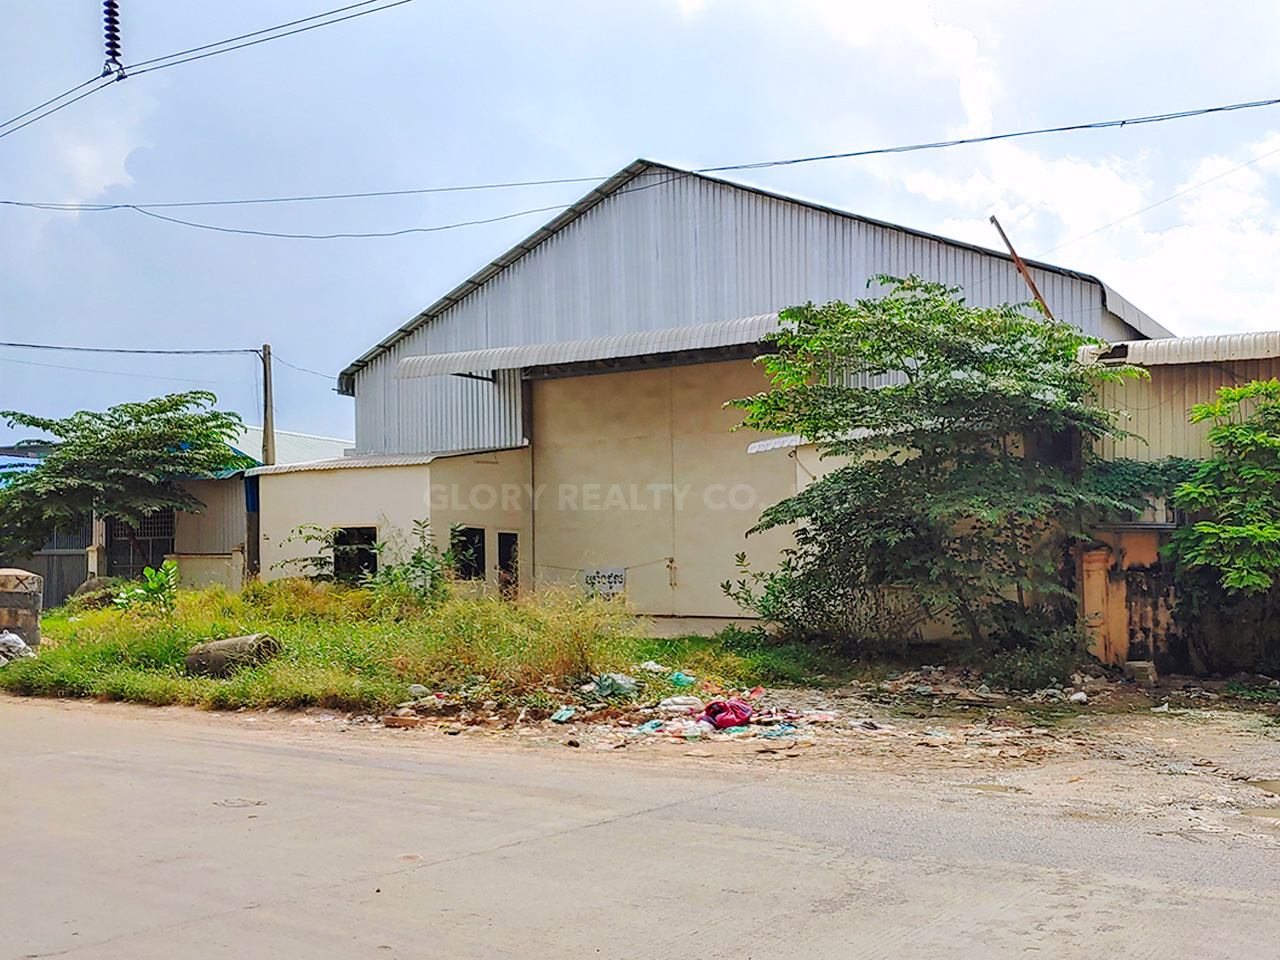 700 Sqm warehouse for rent @ Steung Meanchey area